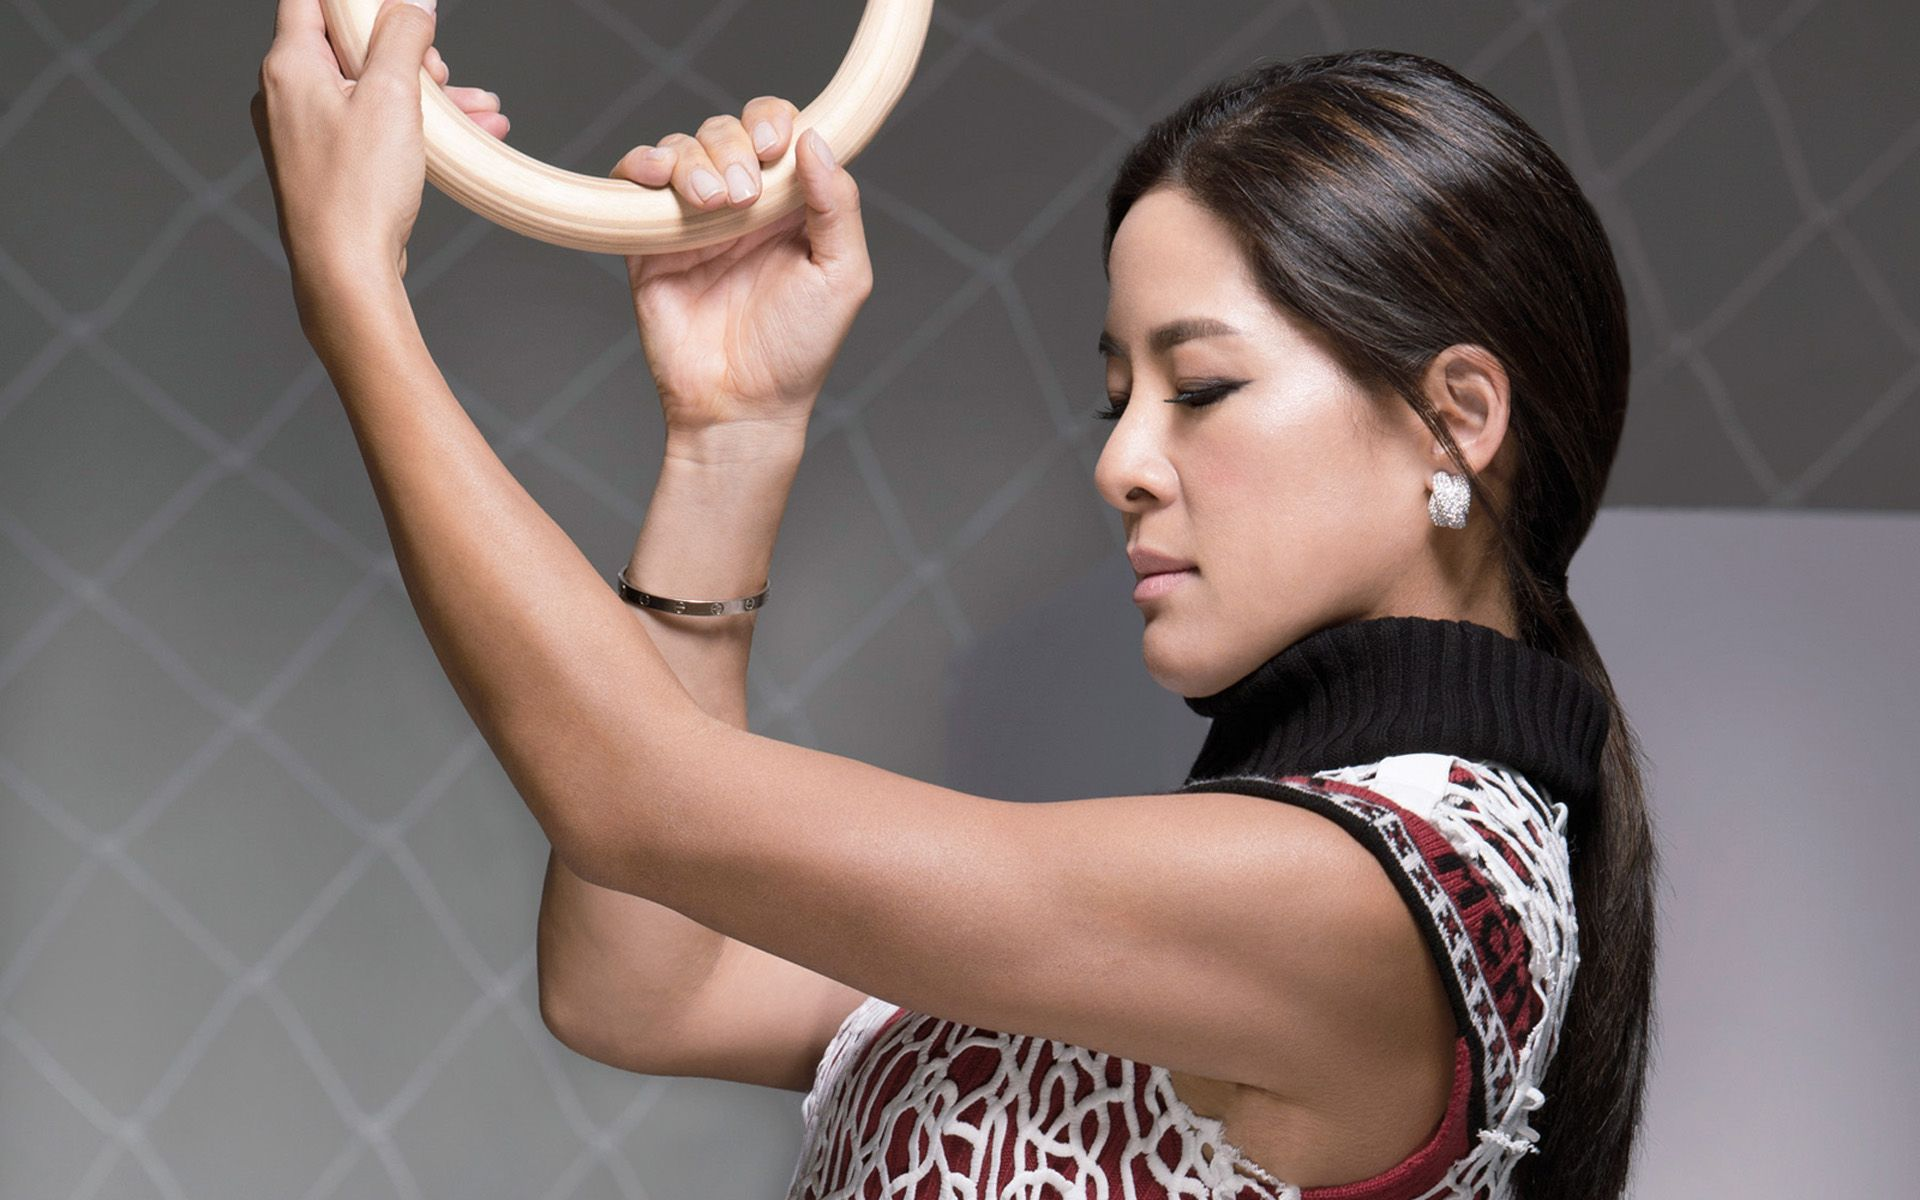 Going Beyond Limits With Sabrina Fung-Lam